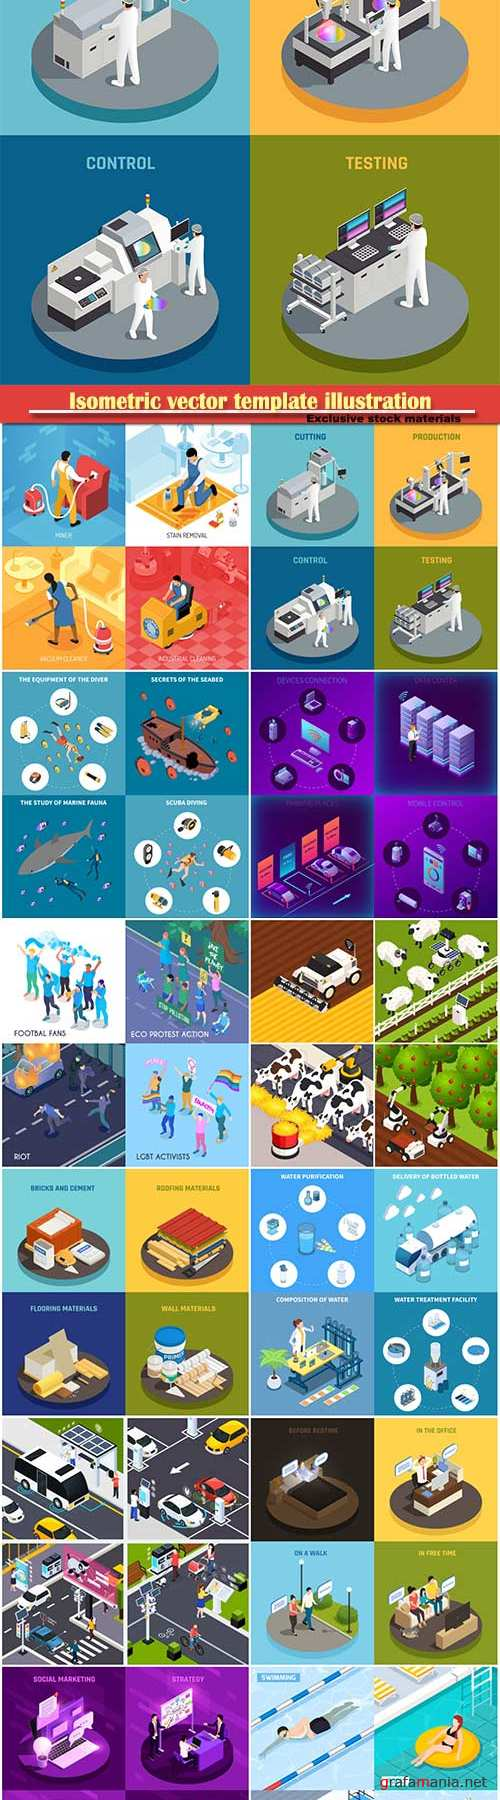 Isometric vector template illustration # 8